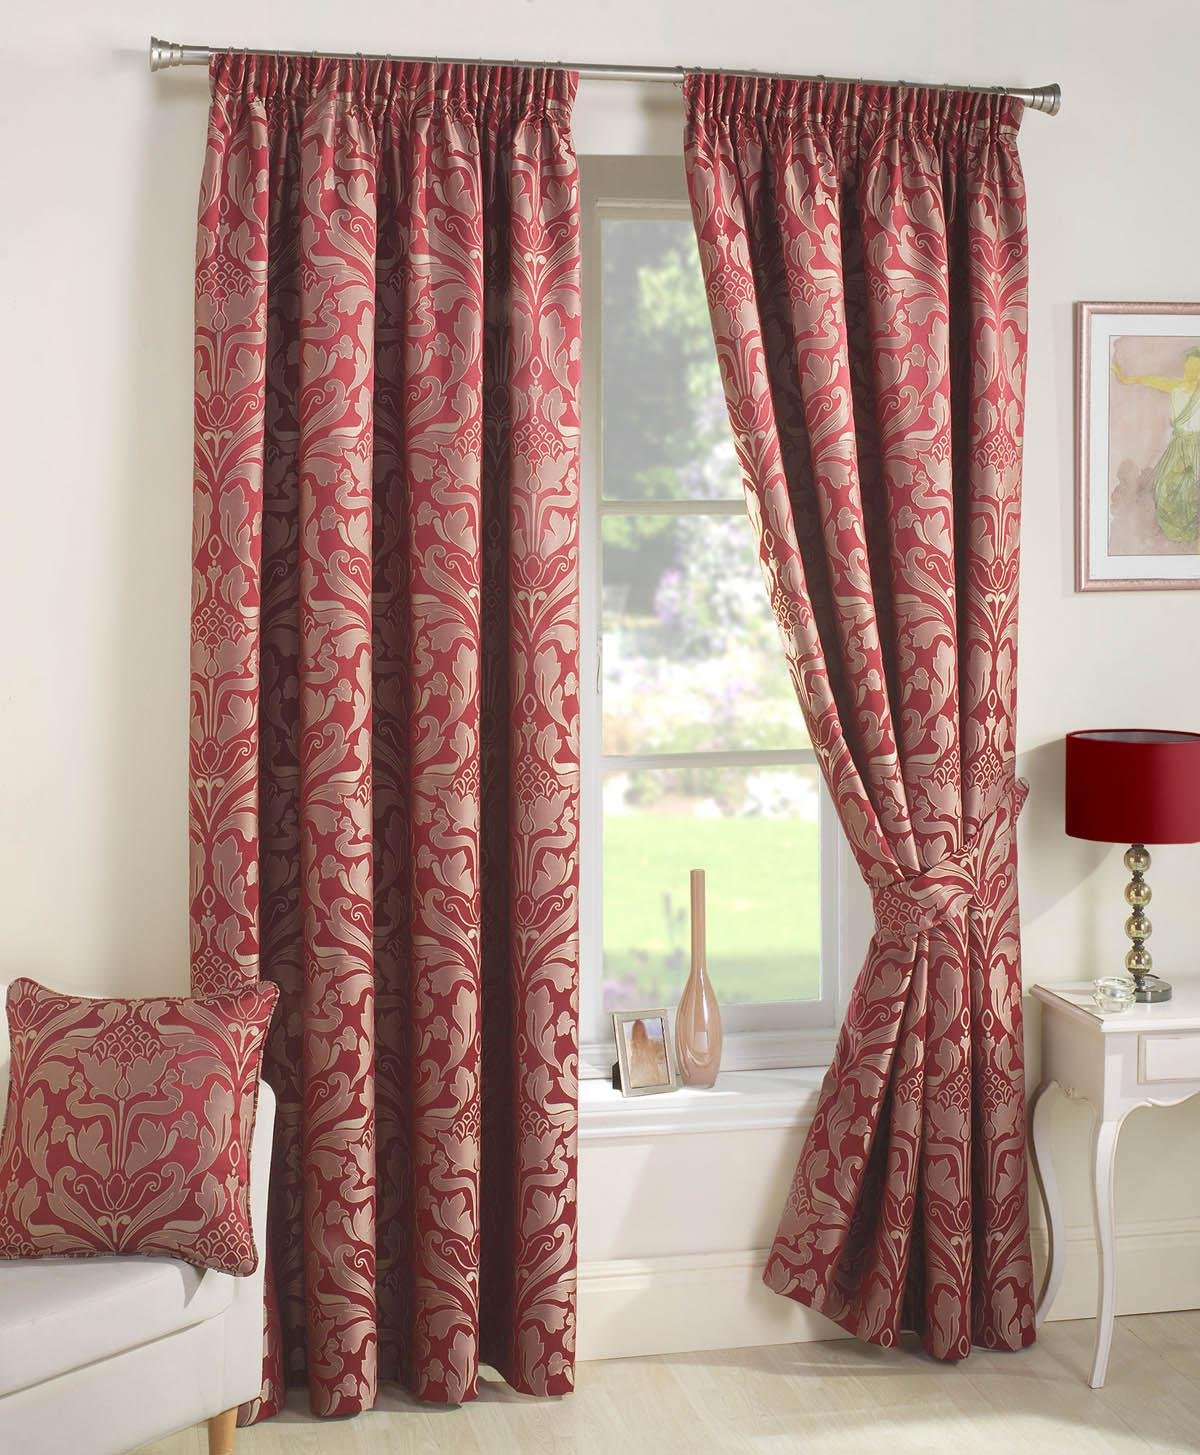 Red patterned curtains - Crompton Ready Made Lined Curtains